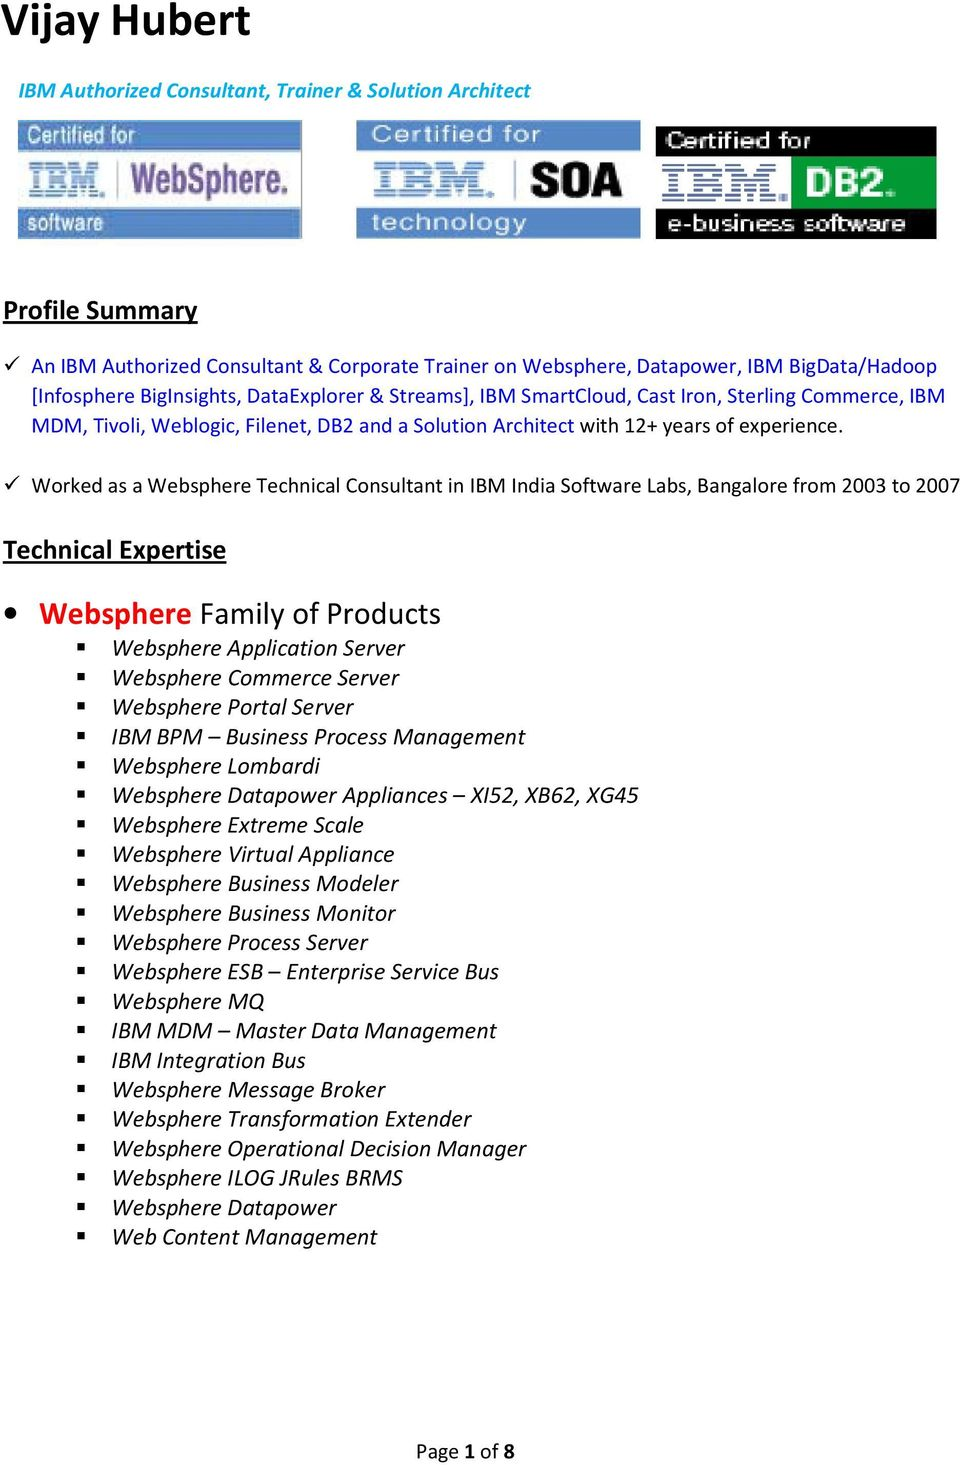 Worked as a Websphere Technical Consultant in IBM India